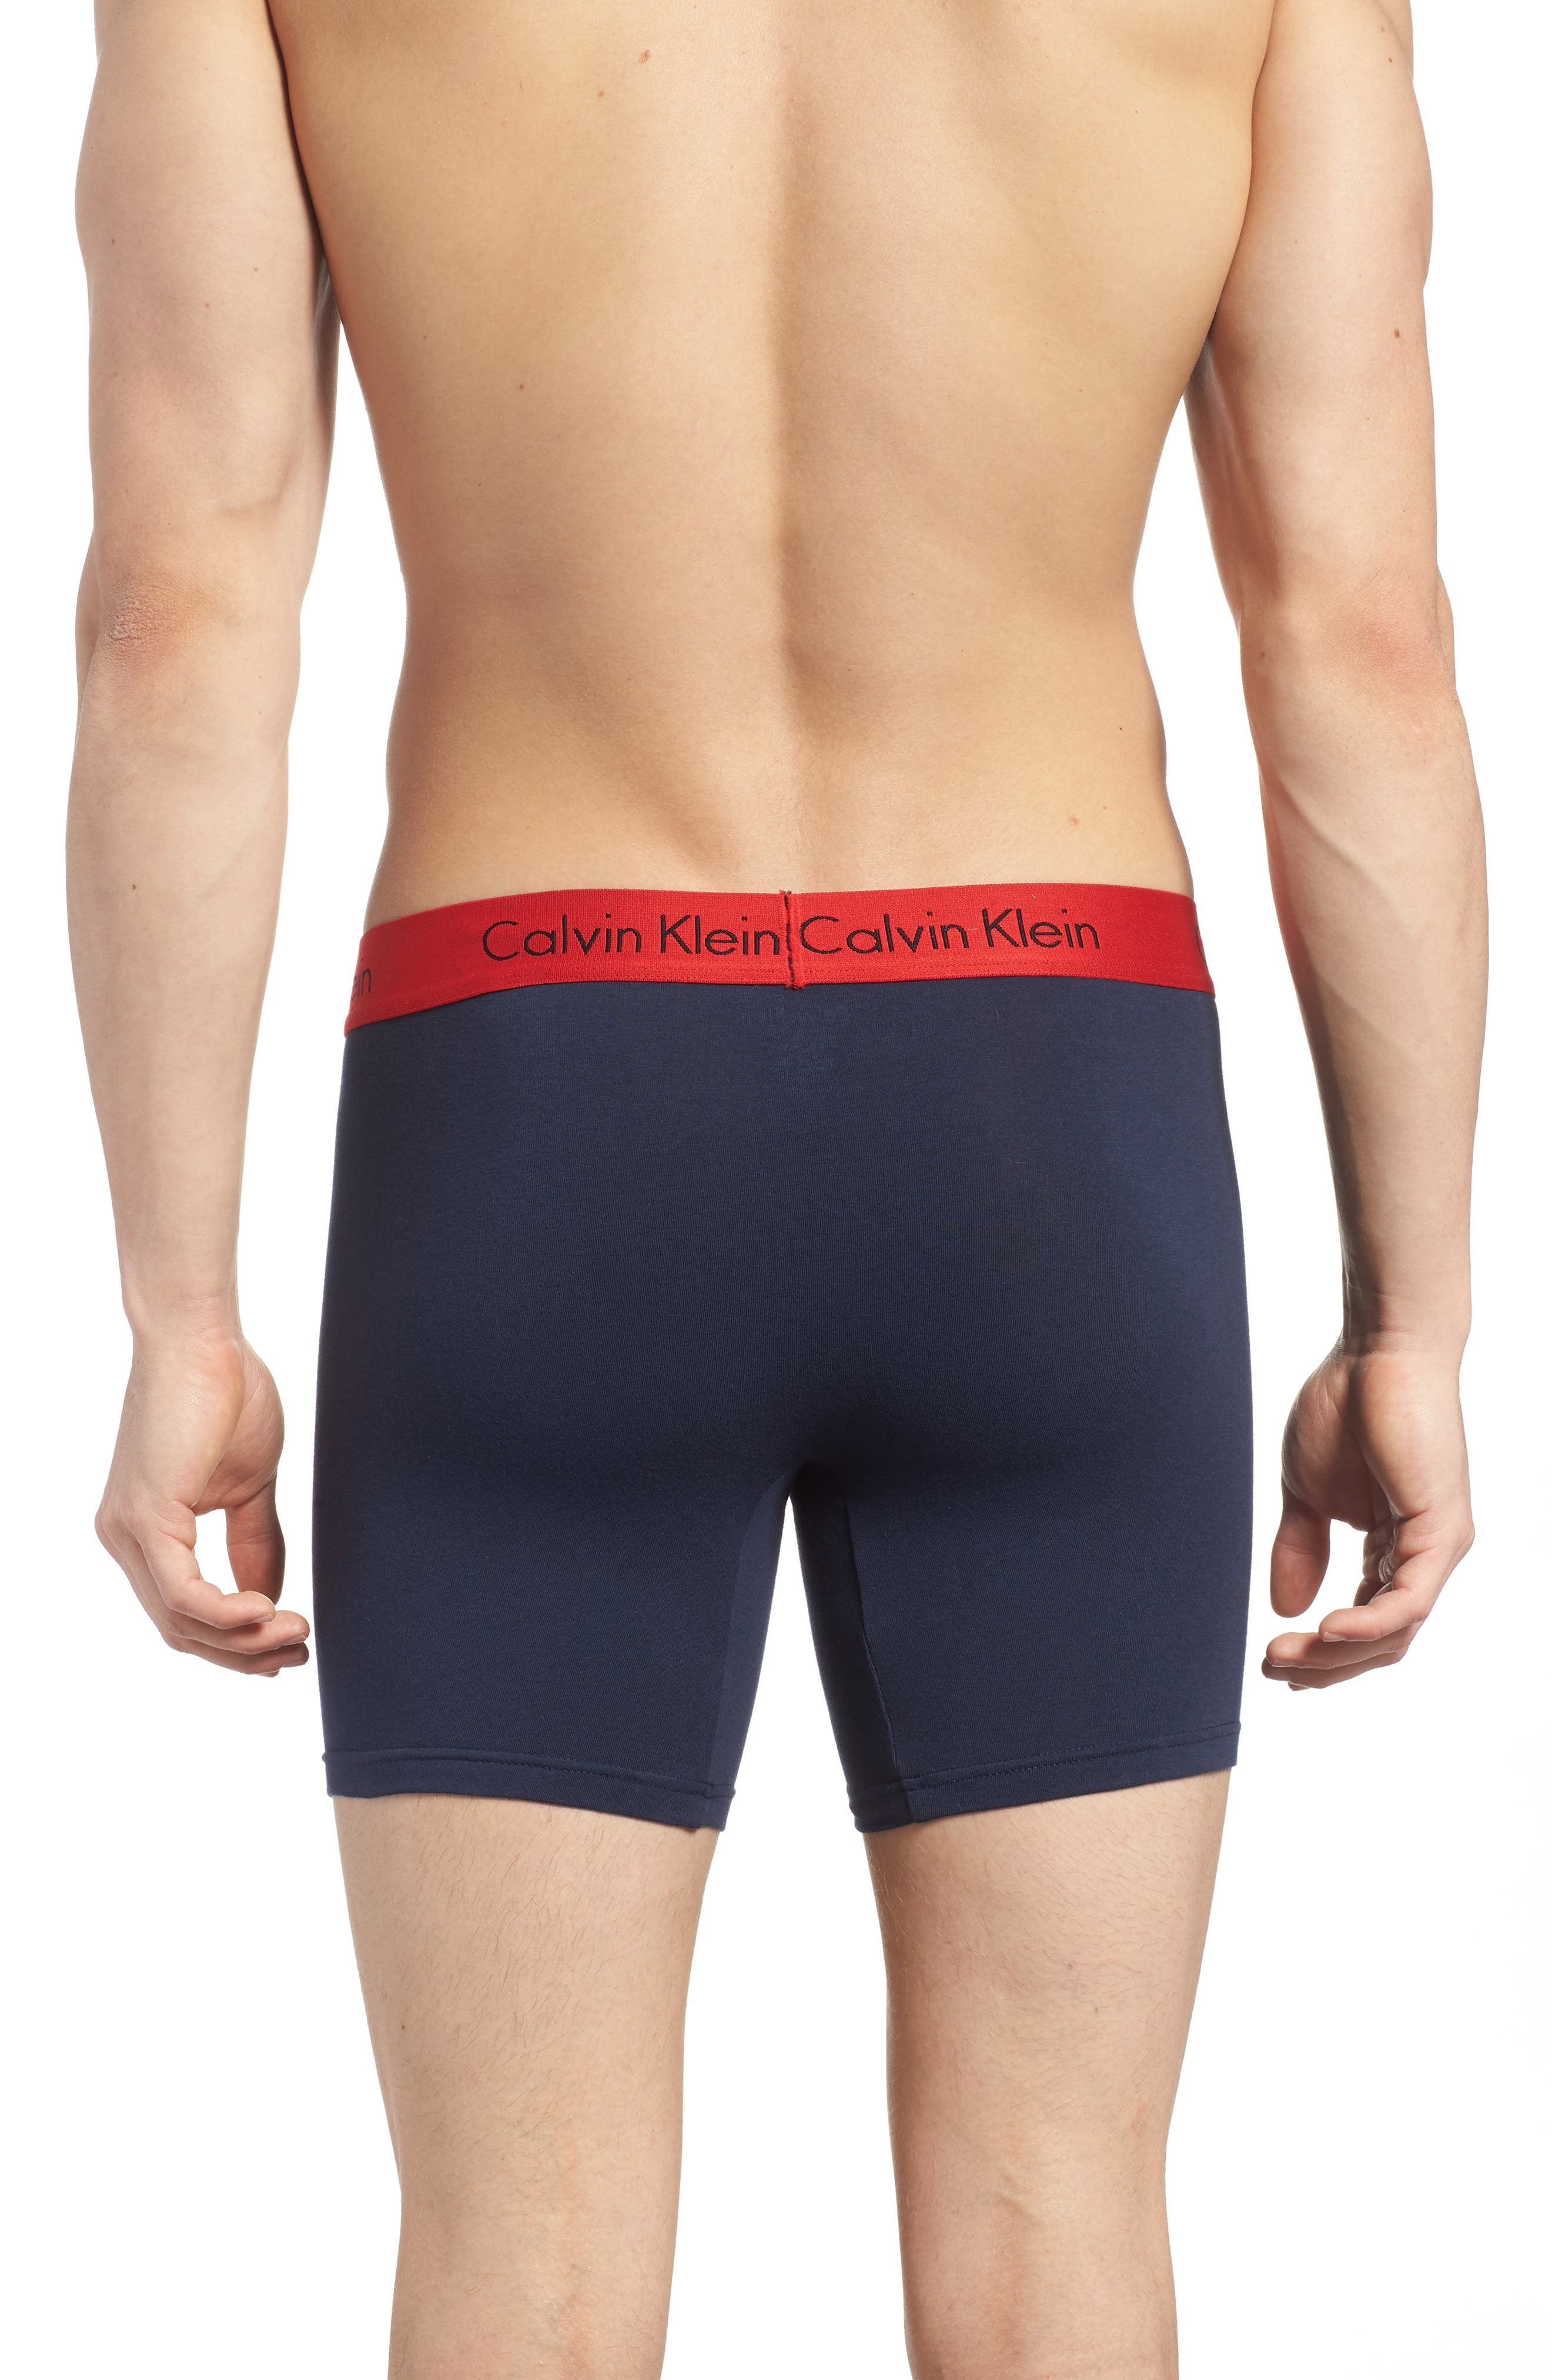 3-Pack Boxer Briefs,                             Alternate thumbnail 3, color,                             Black/ Grey/ Blue/ Red Band